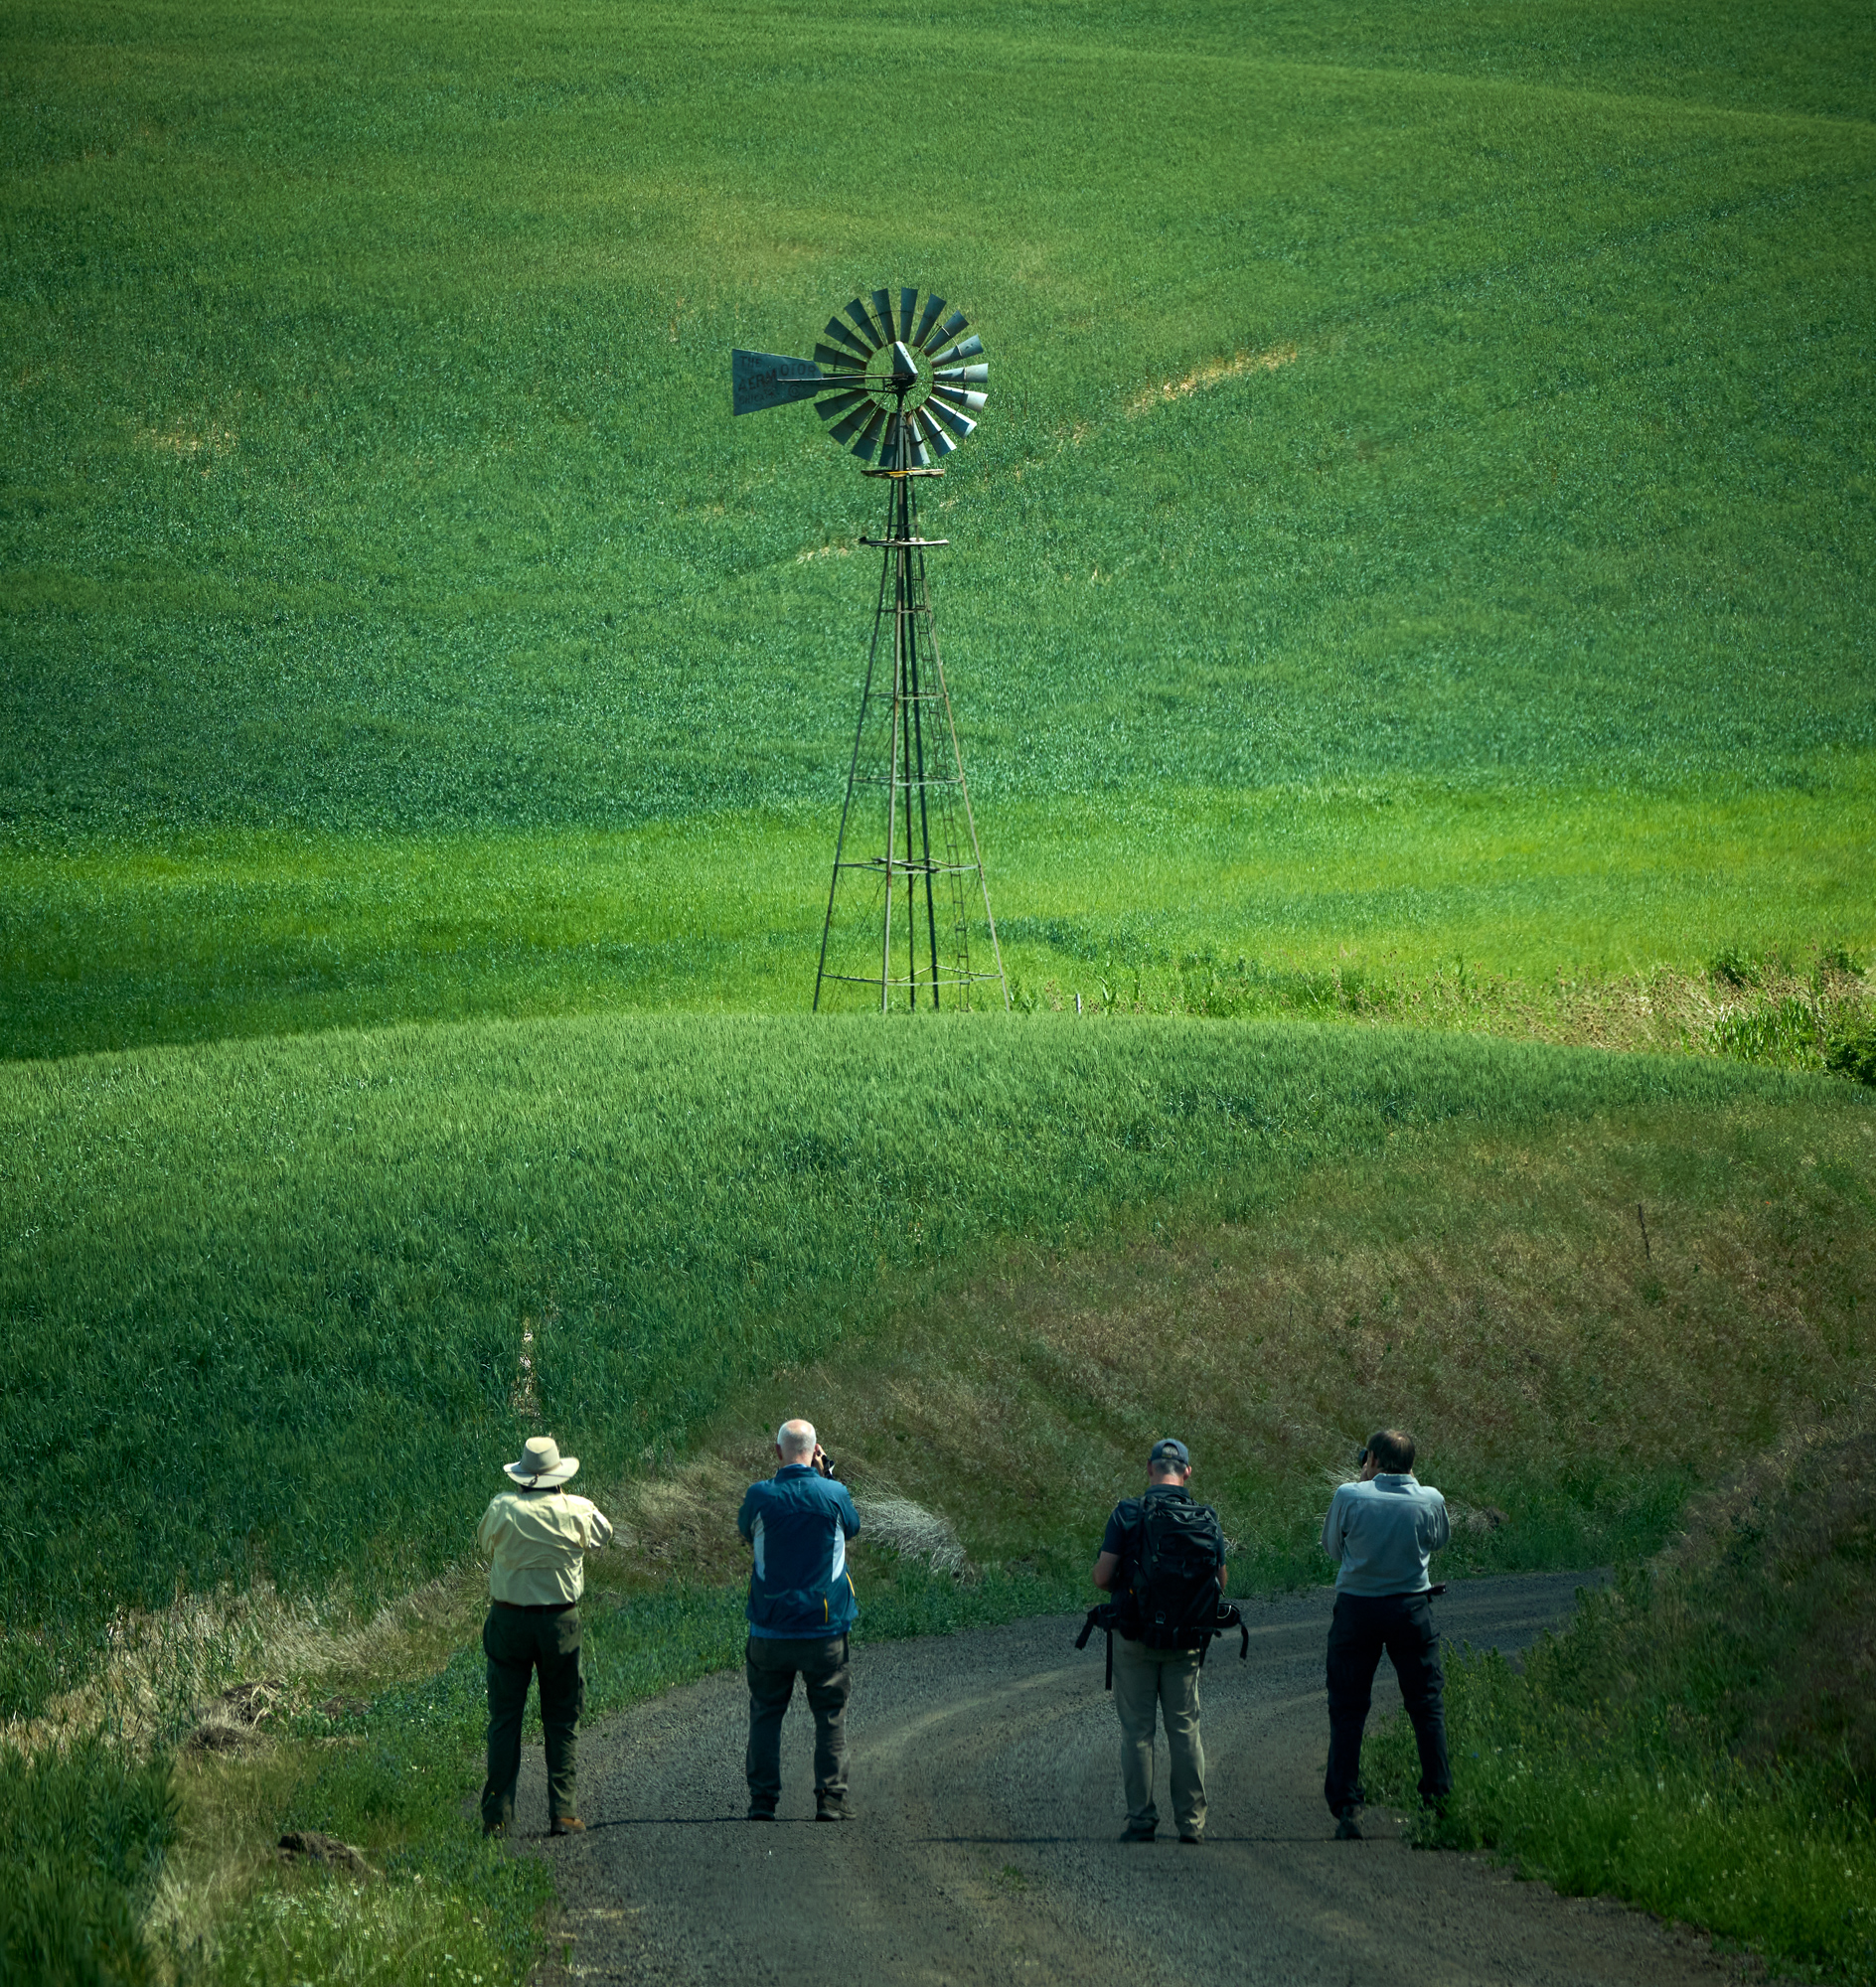 The four attendees of the workshop working on a windmill image